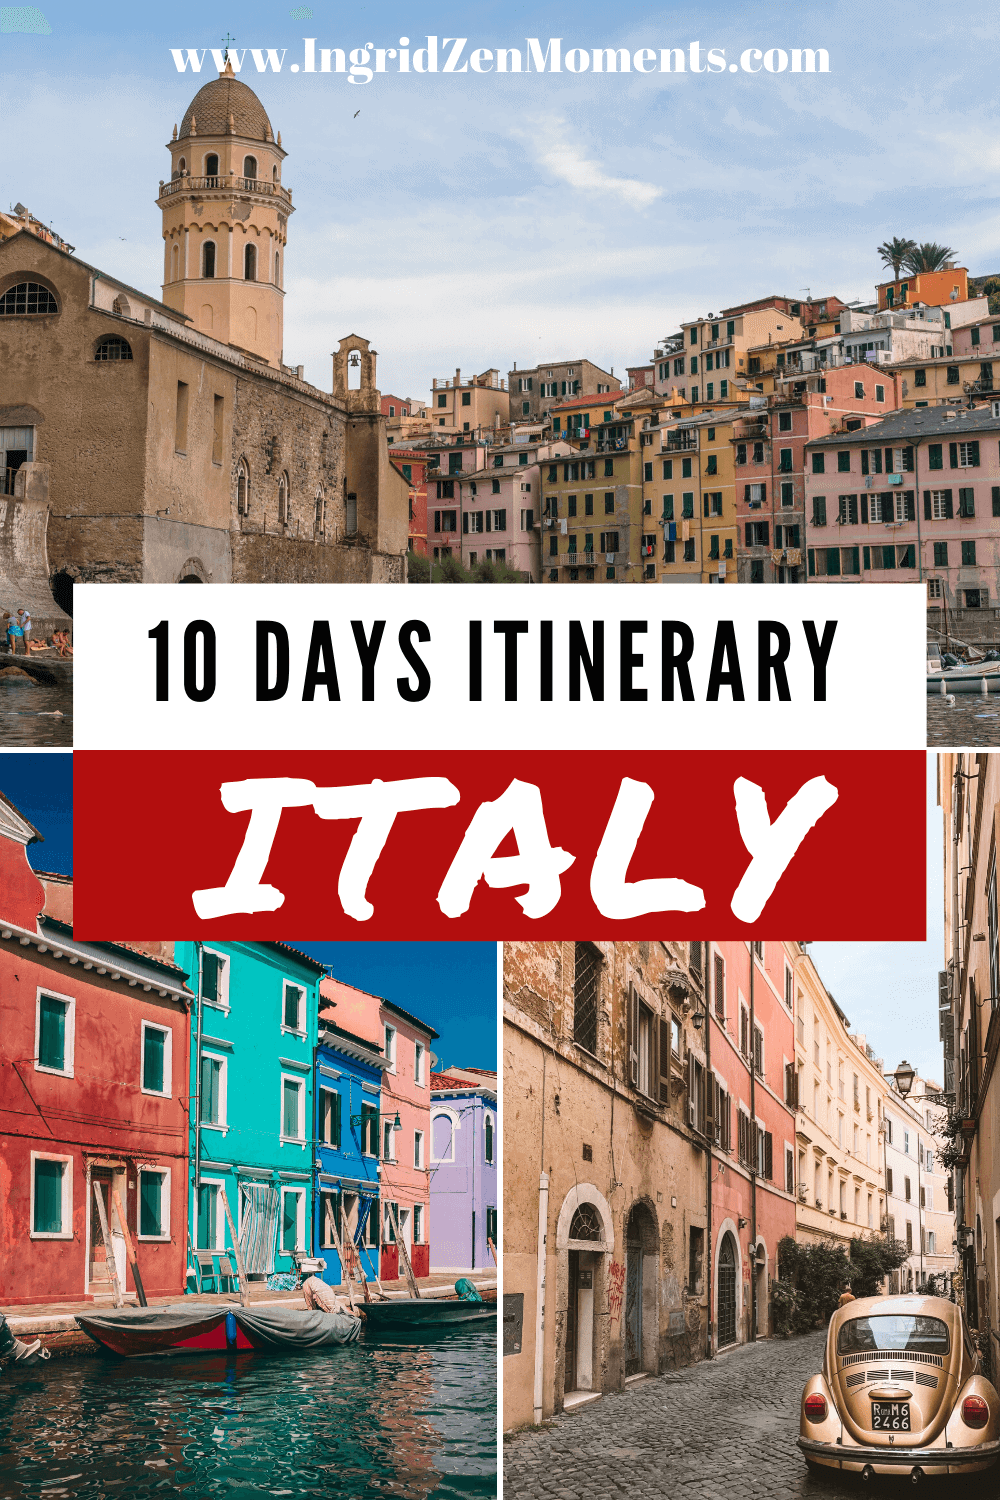 Planning a trip to Italy? Check out these 2 options for some of the best 10 days in Italy itinerary. All the Italy tips you know for traveling to Rome, Tuscany, the Amalfi Coast, and much more. Information on how to #skiptheline at places like the Vatican, Florence Duomo, and Pompeii. When to visit, where to stay, what to do, and much more. Choose to see Southern Italy or Northern Italy, but travel slow on your Italy trip, and see some of the most beautiful Italy destinations. #italy #travel